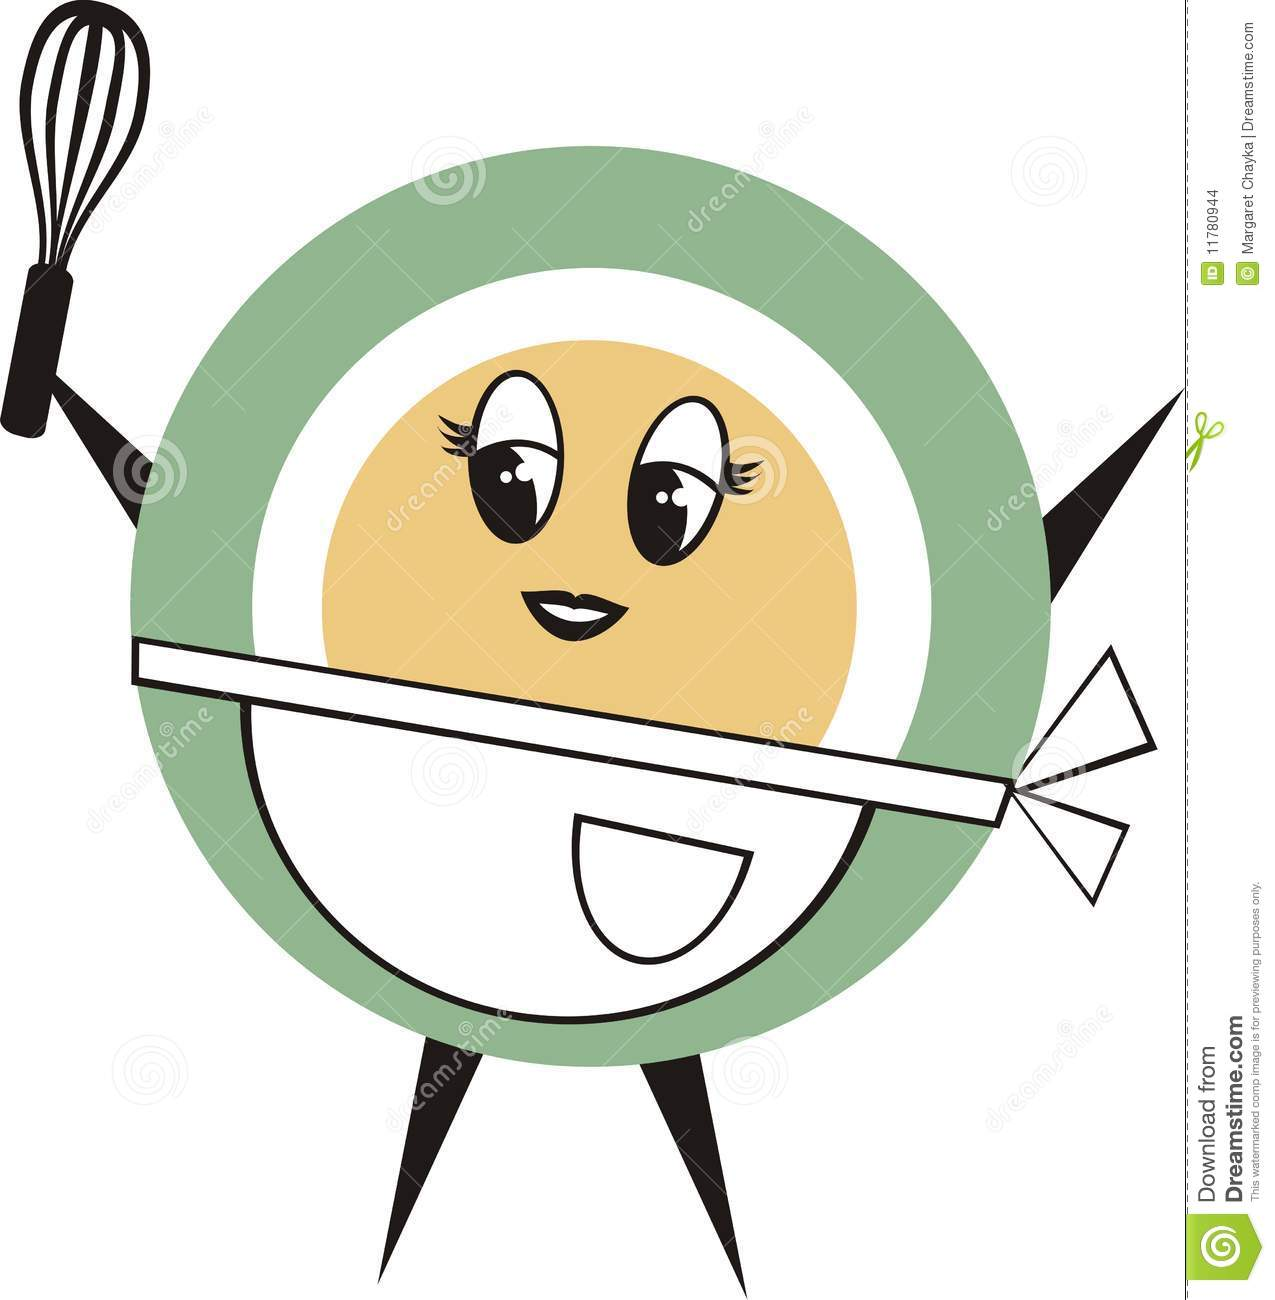 Kitchen clipart cooking equipment Cooking Cute Utensils hanging%20cooking%20utensils%20clipart Panda